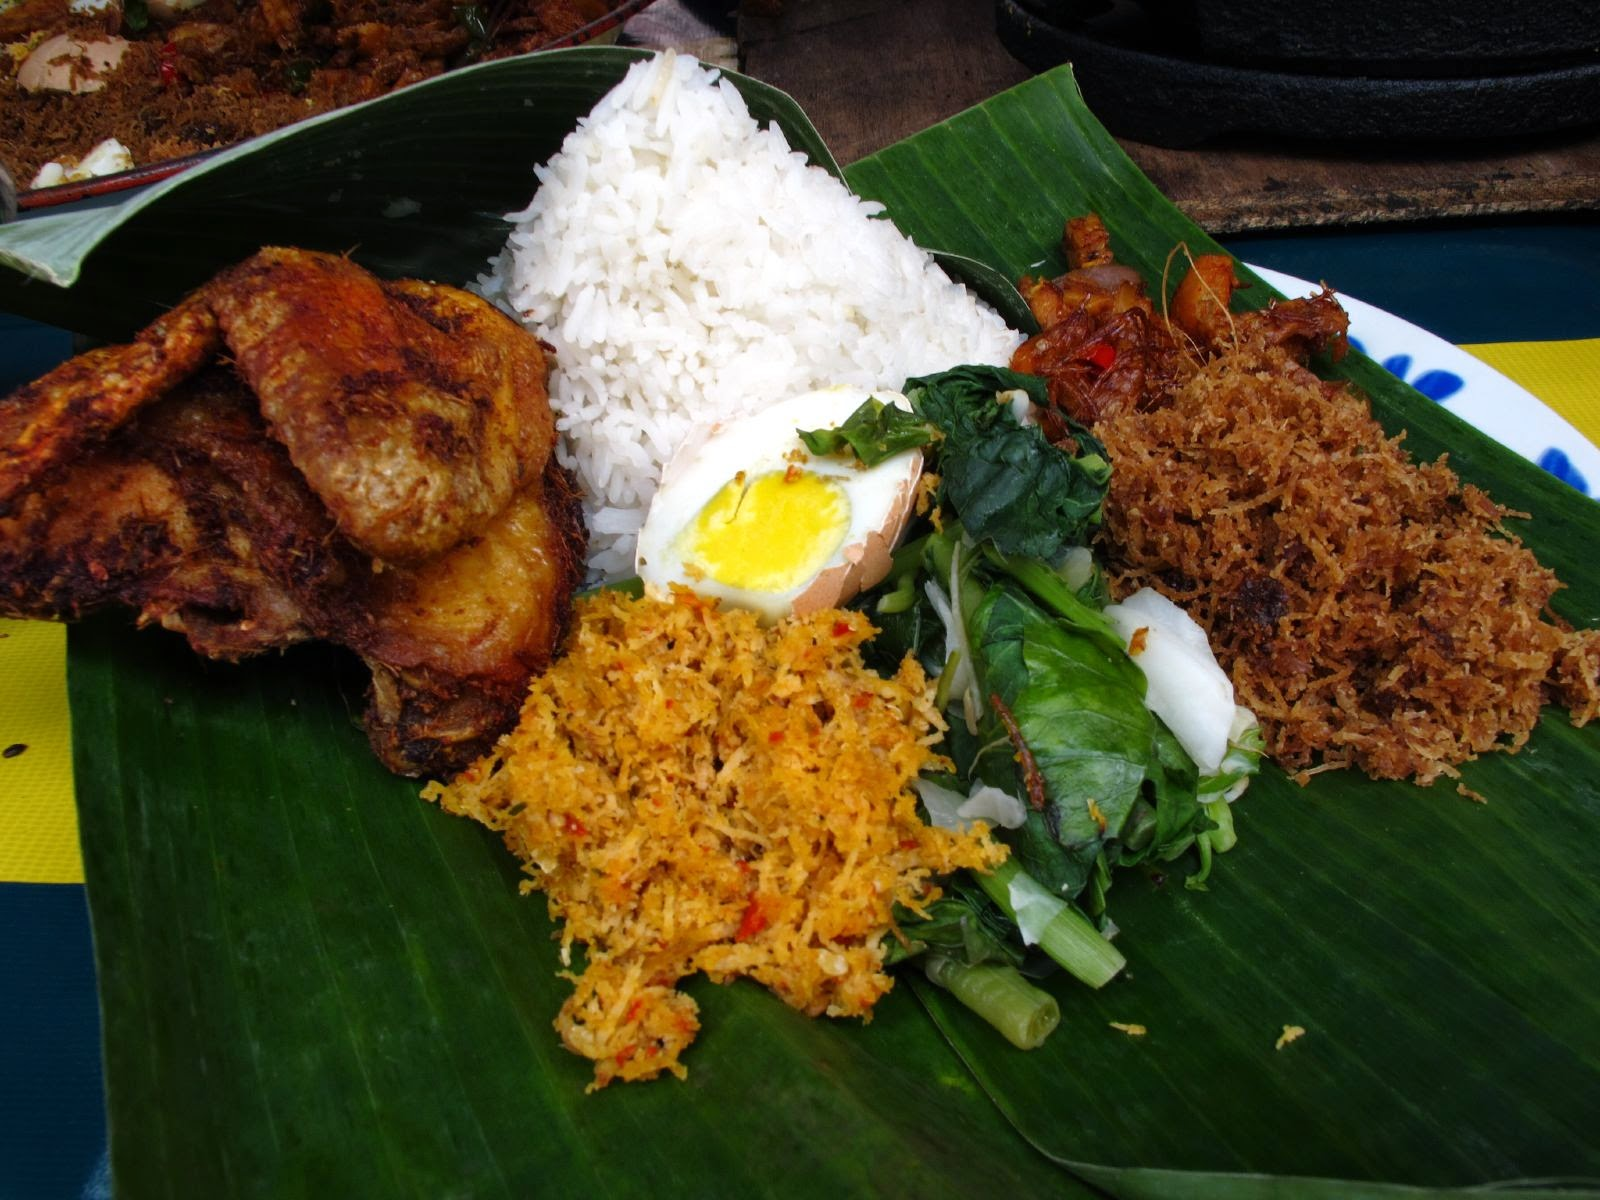 5th Food : Nasi Ambeng